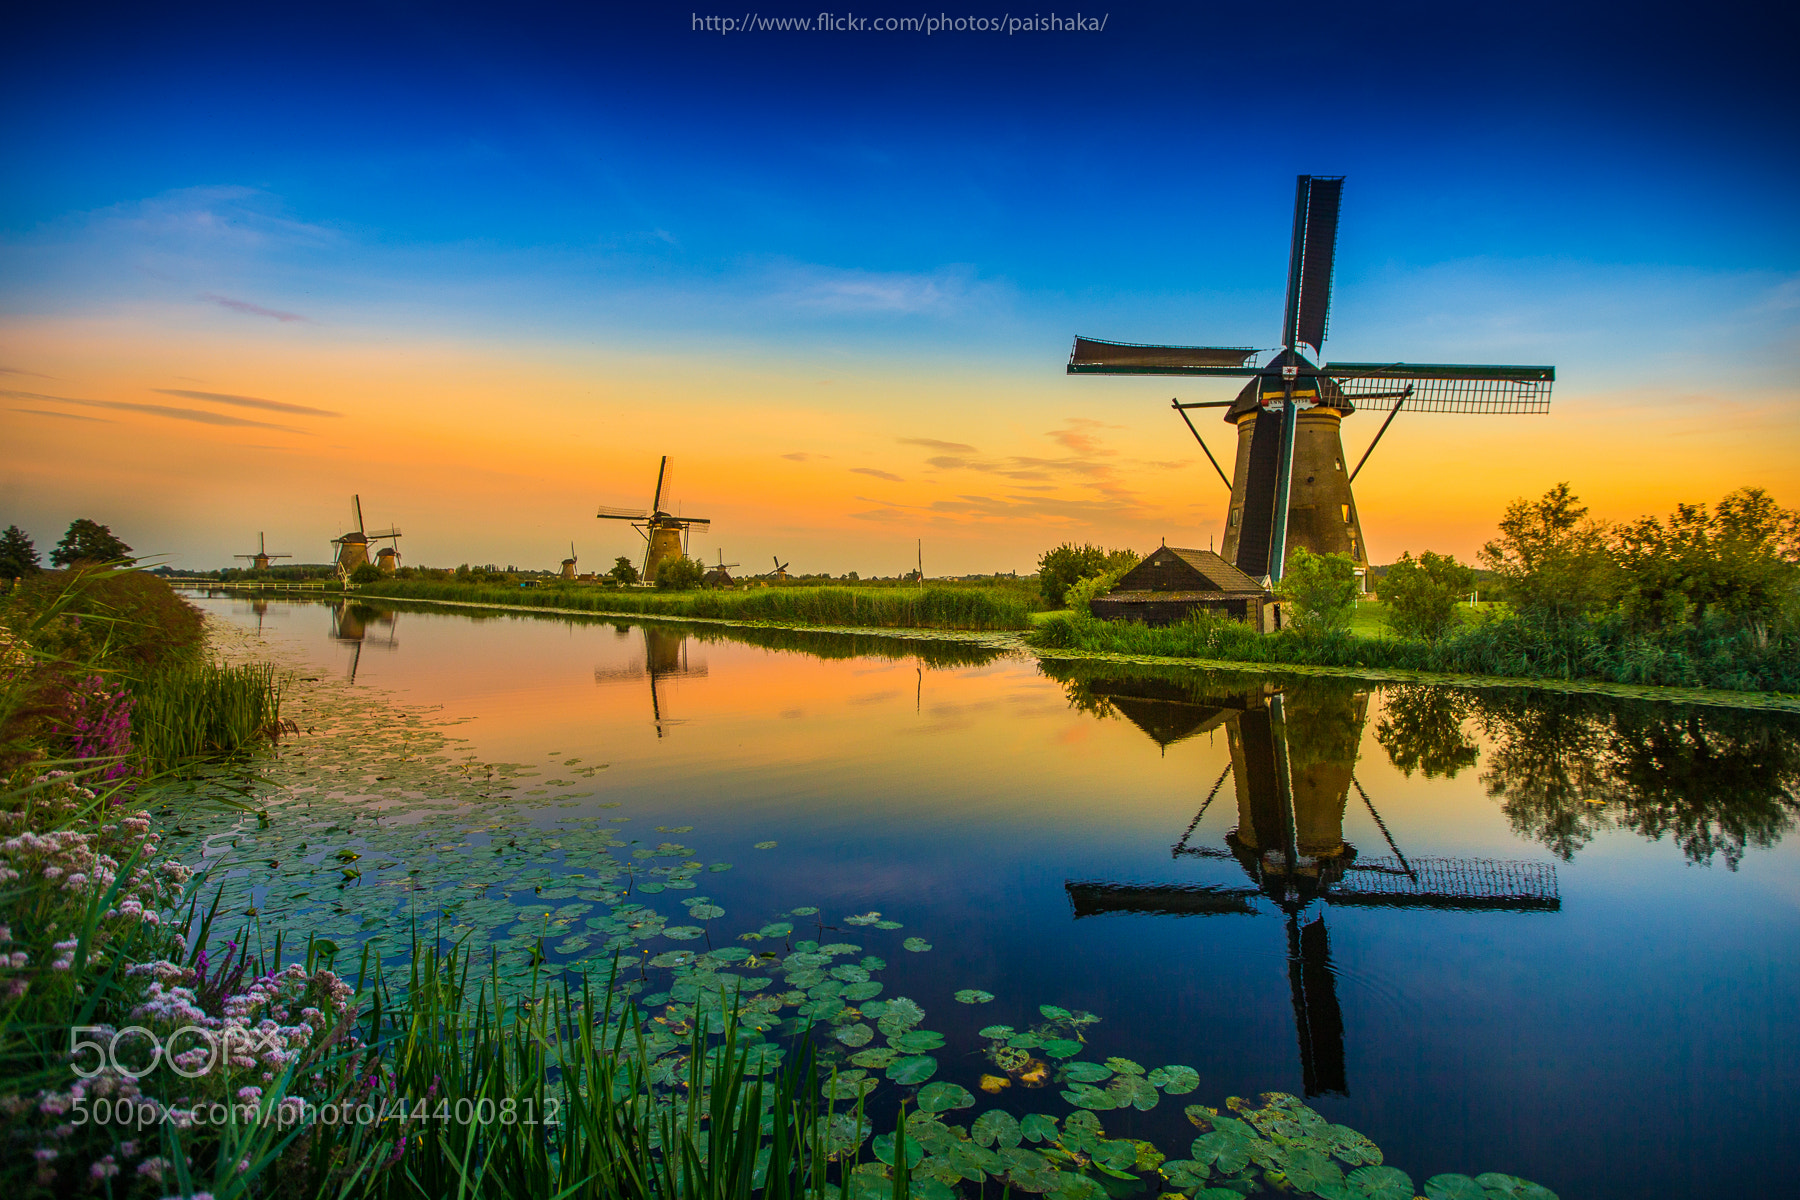 Photograph Dutch Mill by Pai Shaka on 500px